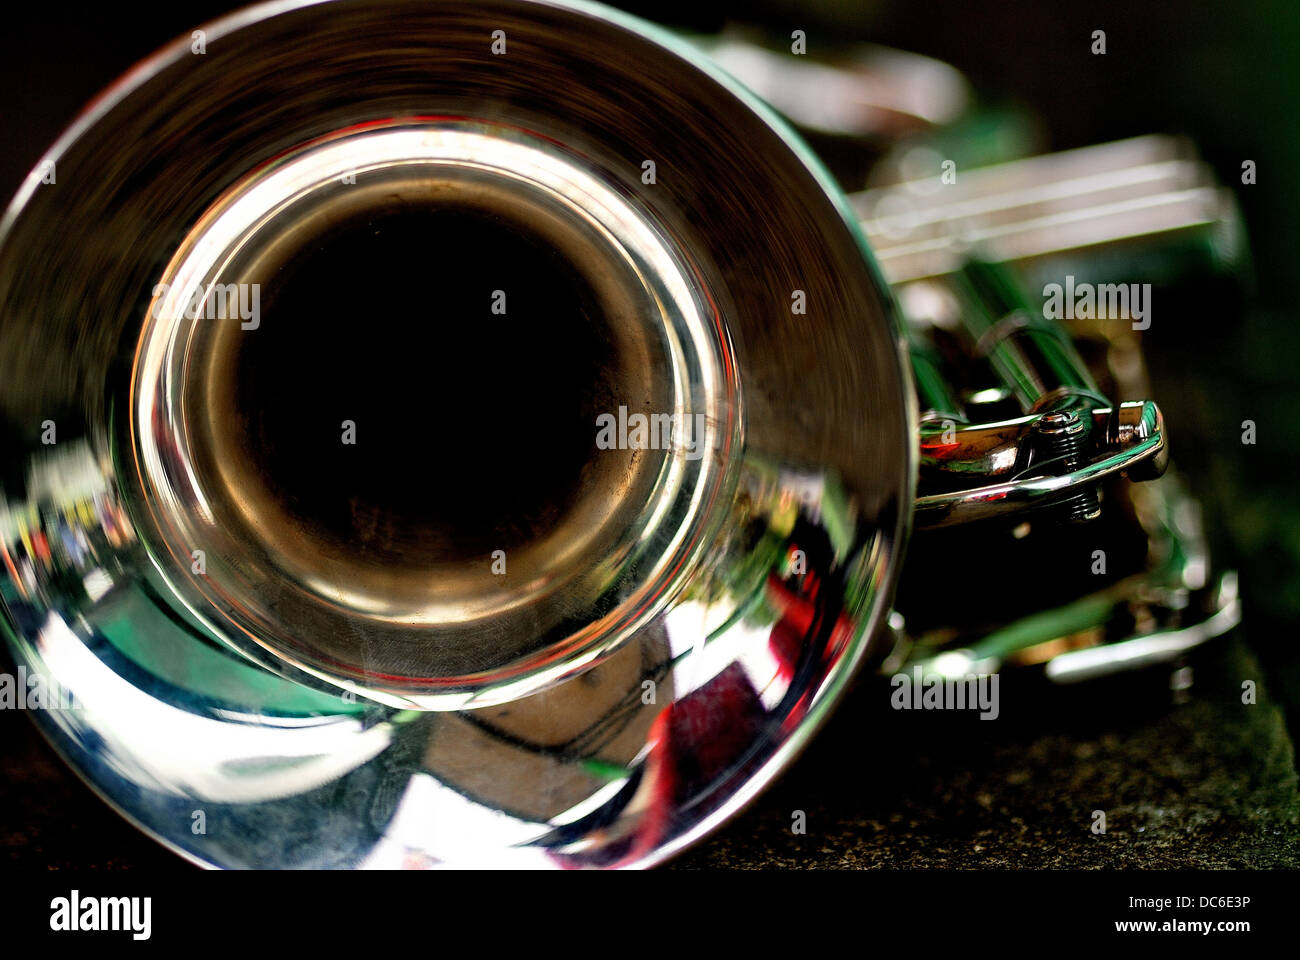 A brass instrument - Stock Image